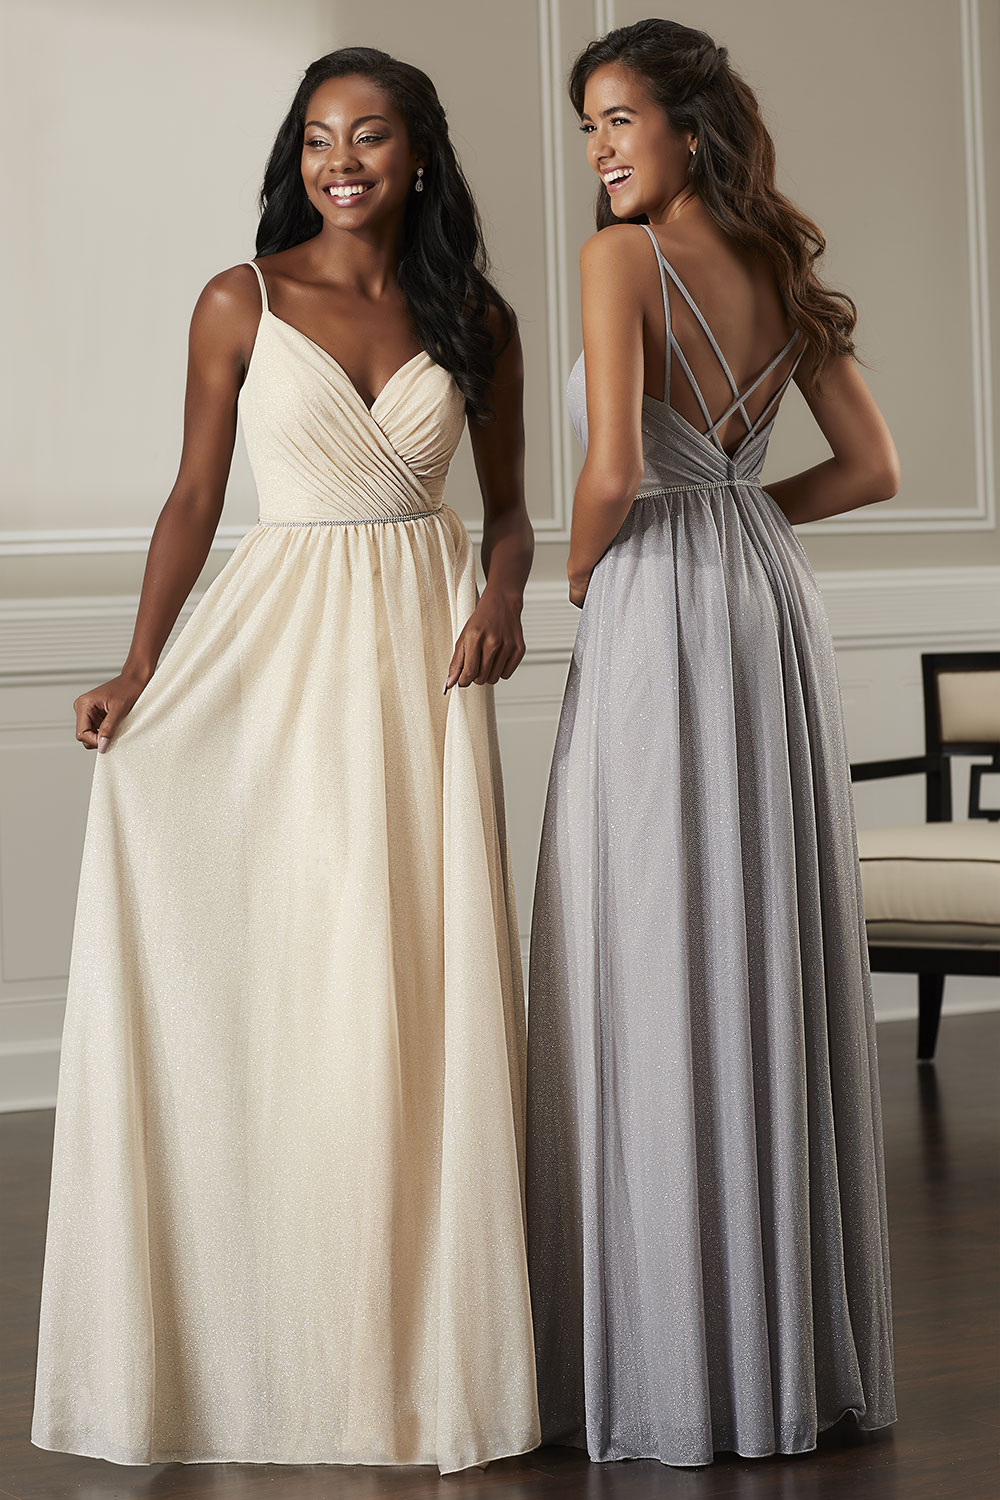 bridesmaid-dresses-jacquelin-bridals-canada-26839